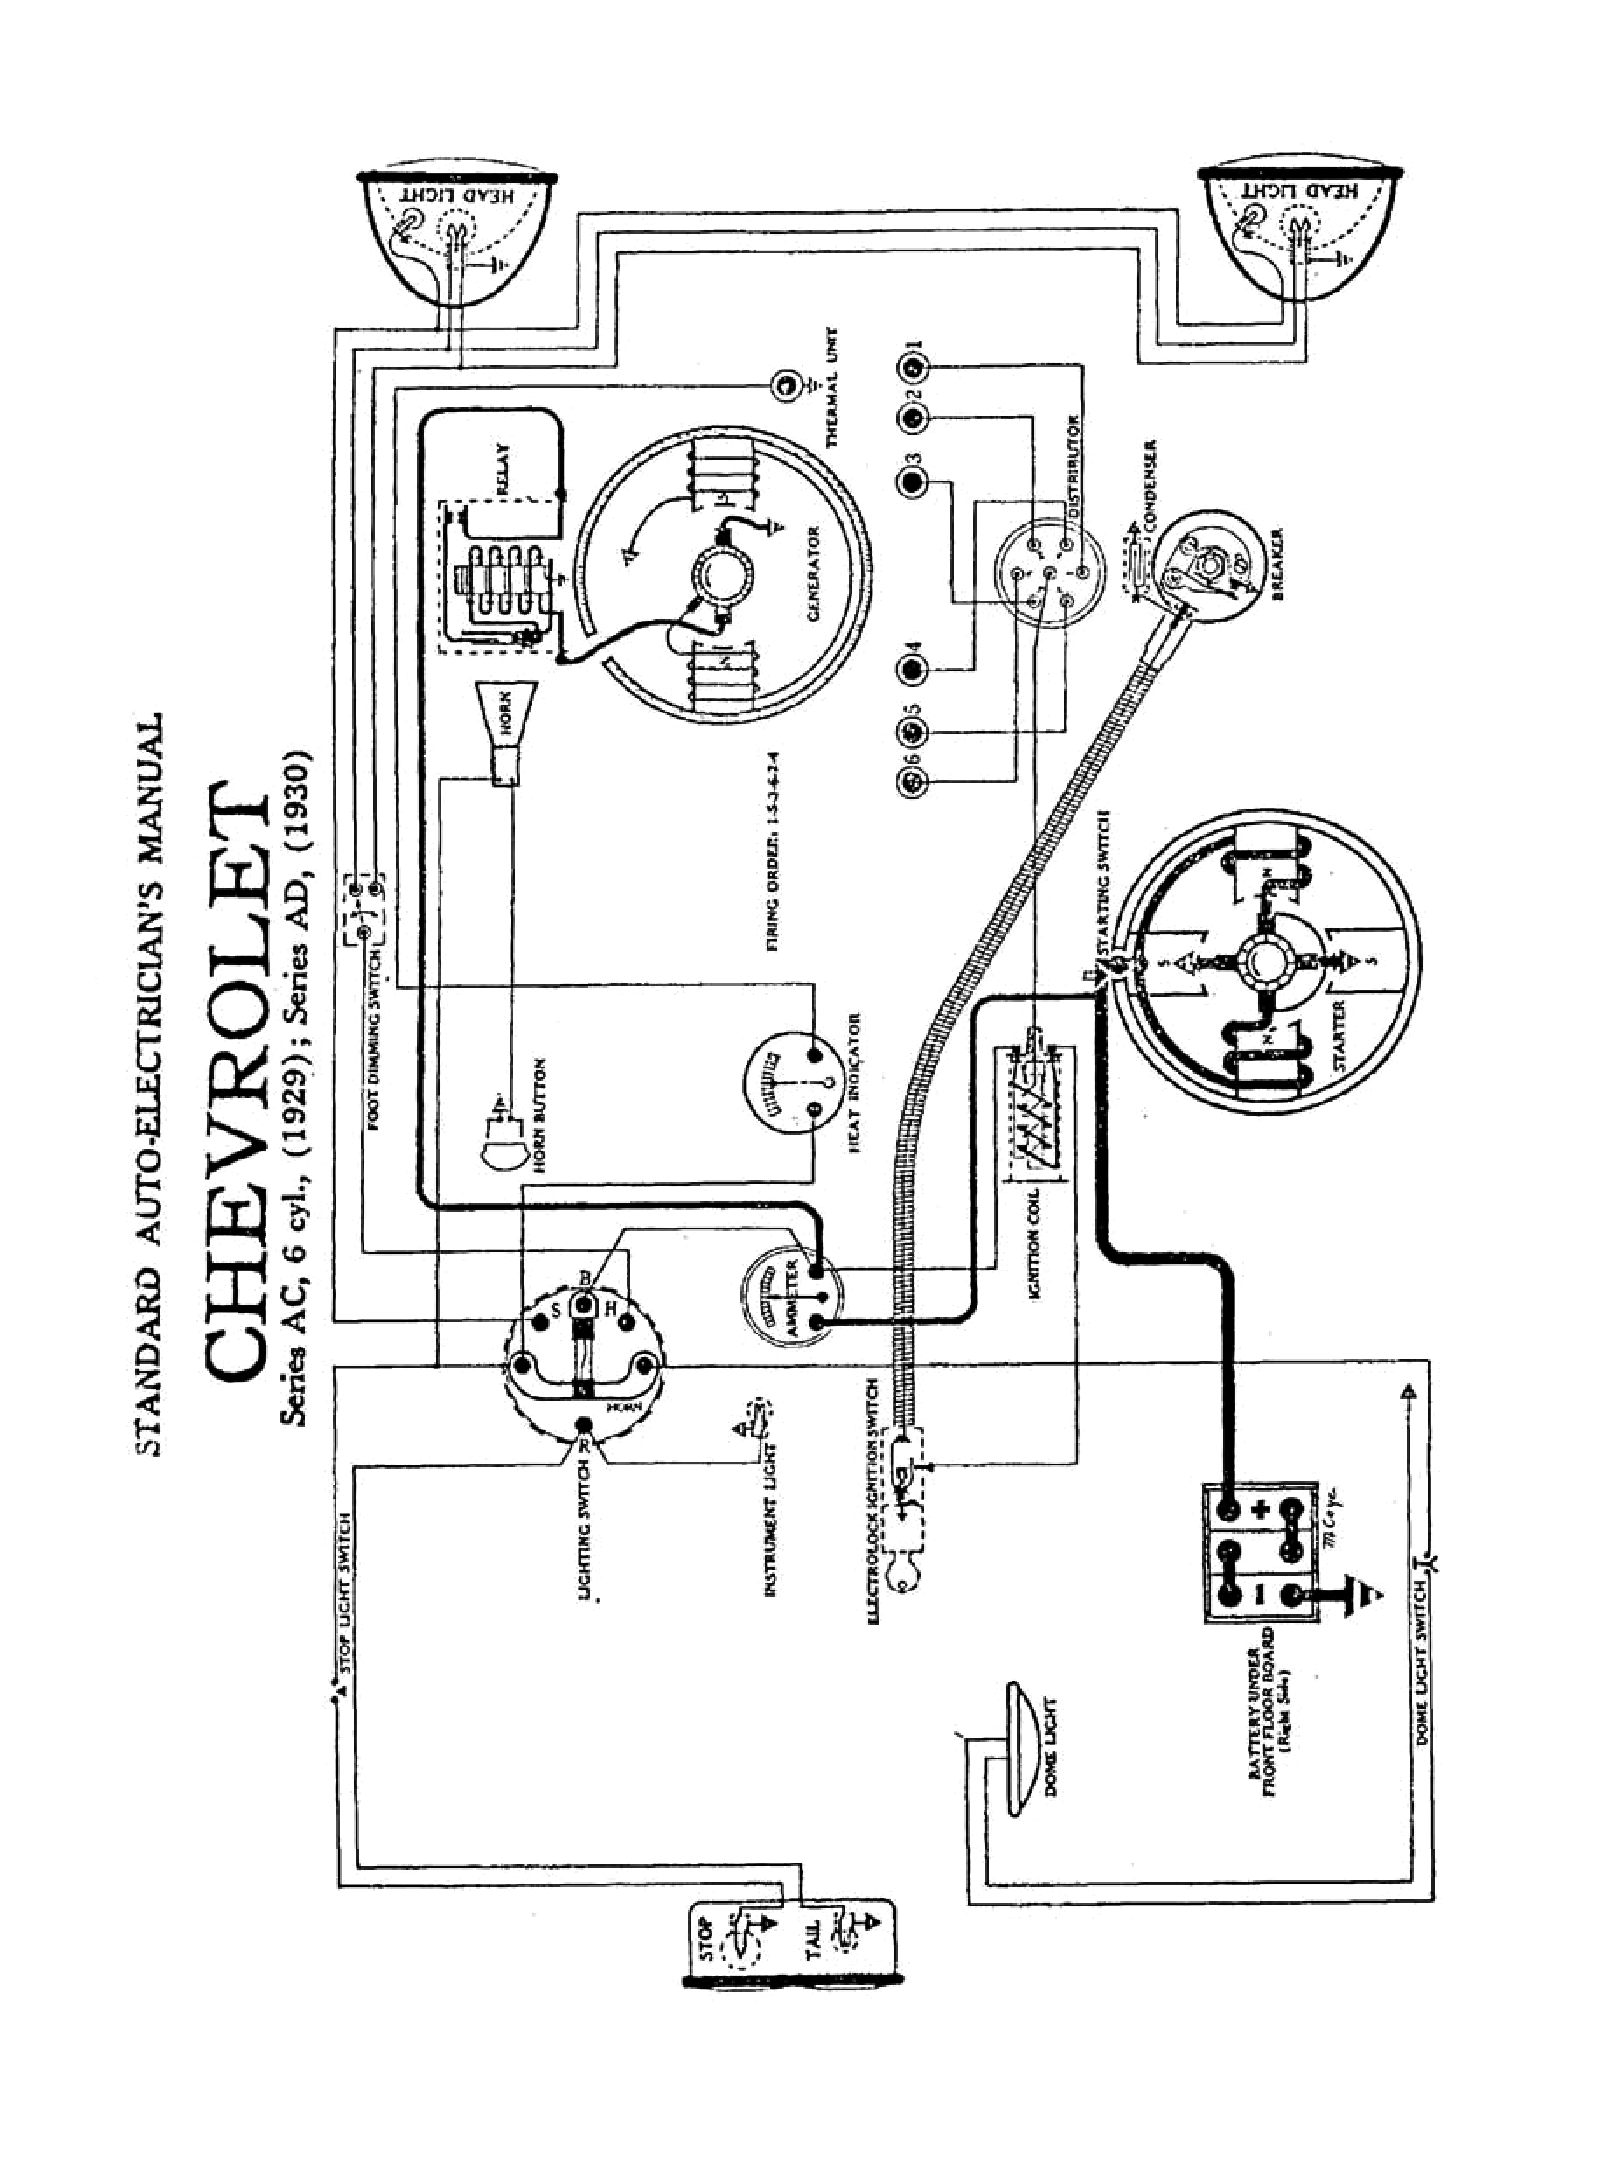 1930 ford model a wiring diagram